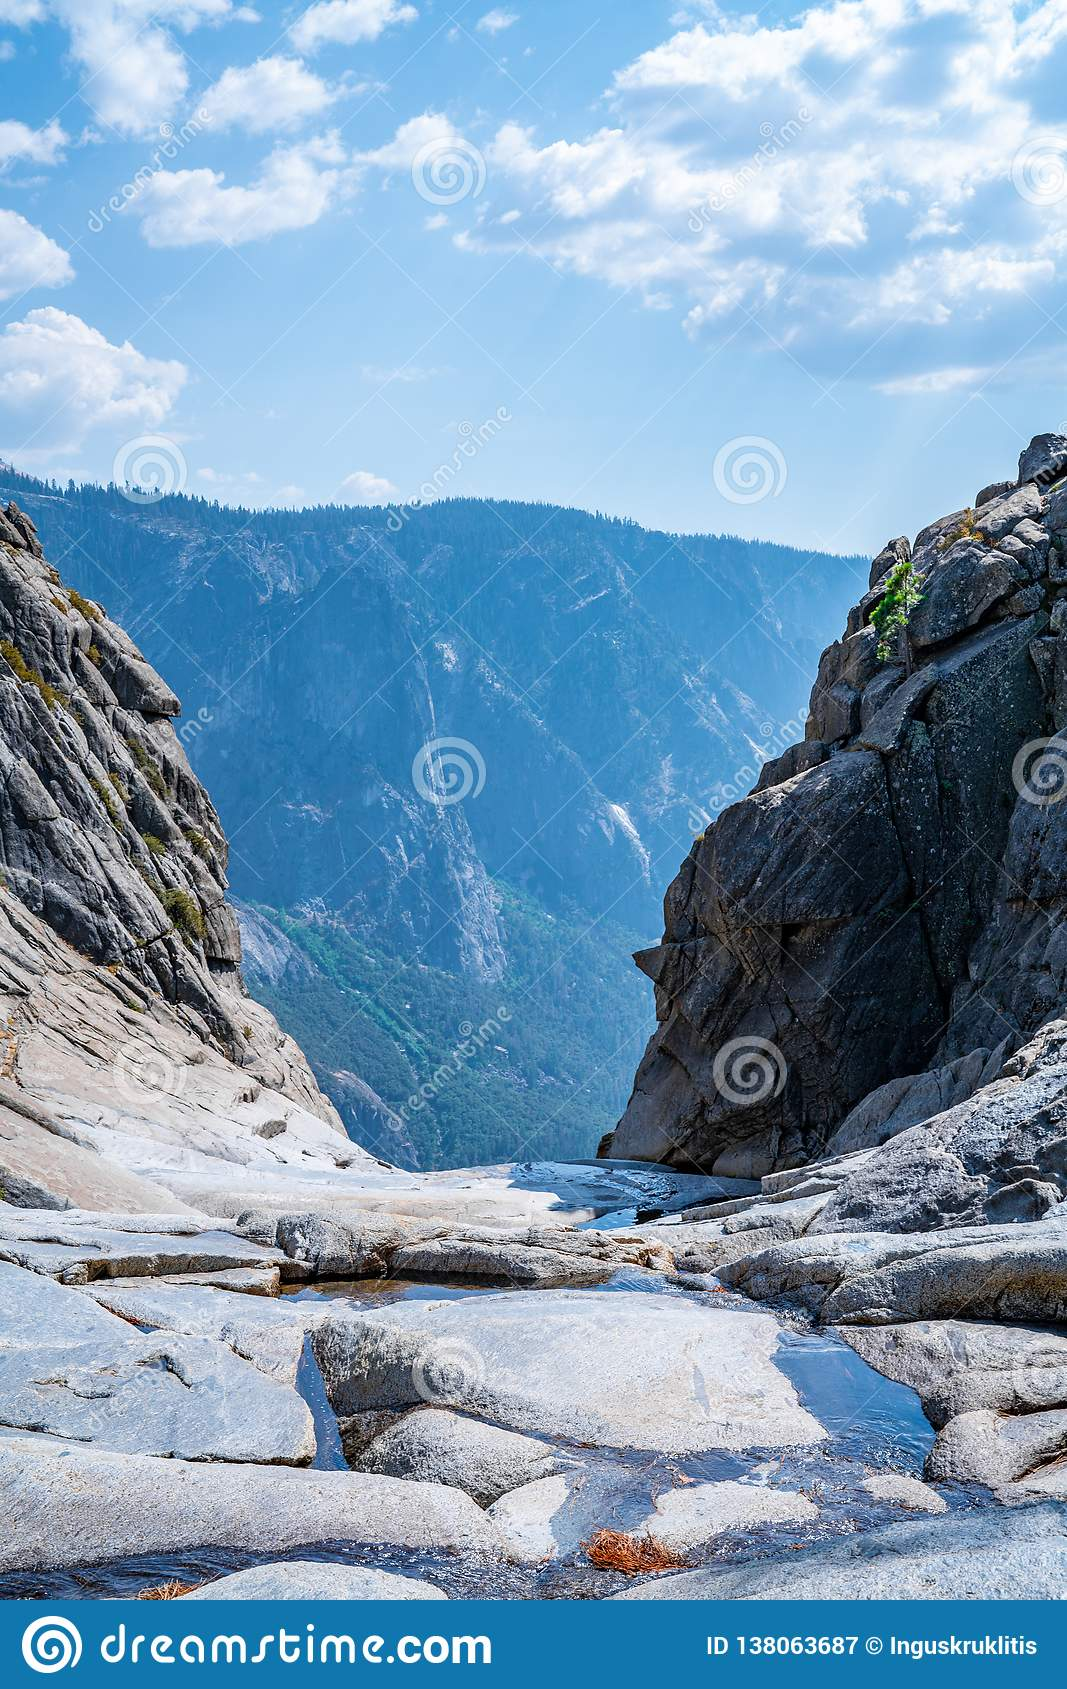 Dried out Yosemite waterfall with small river and pond where used to be mighty falls.